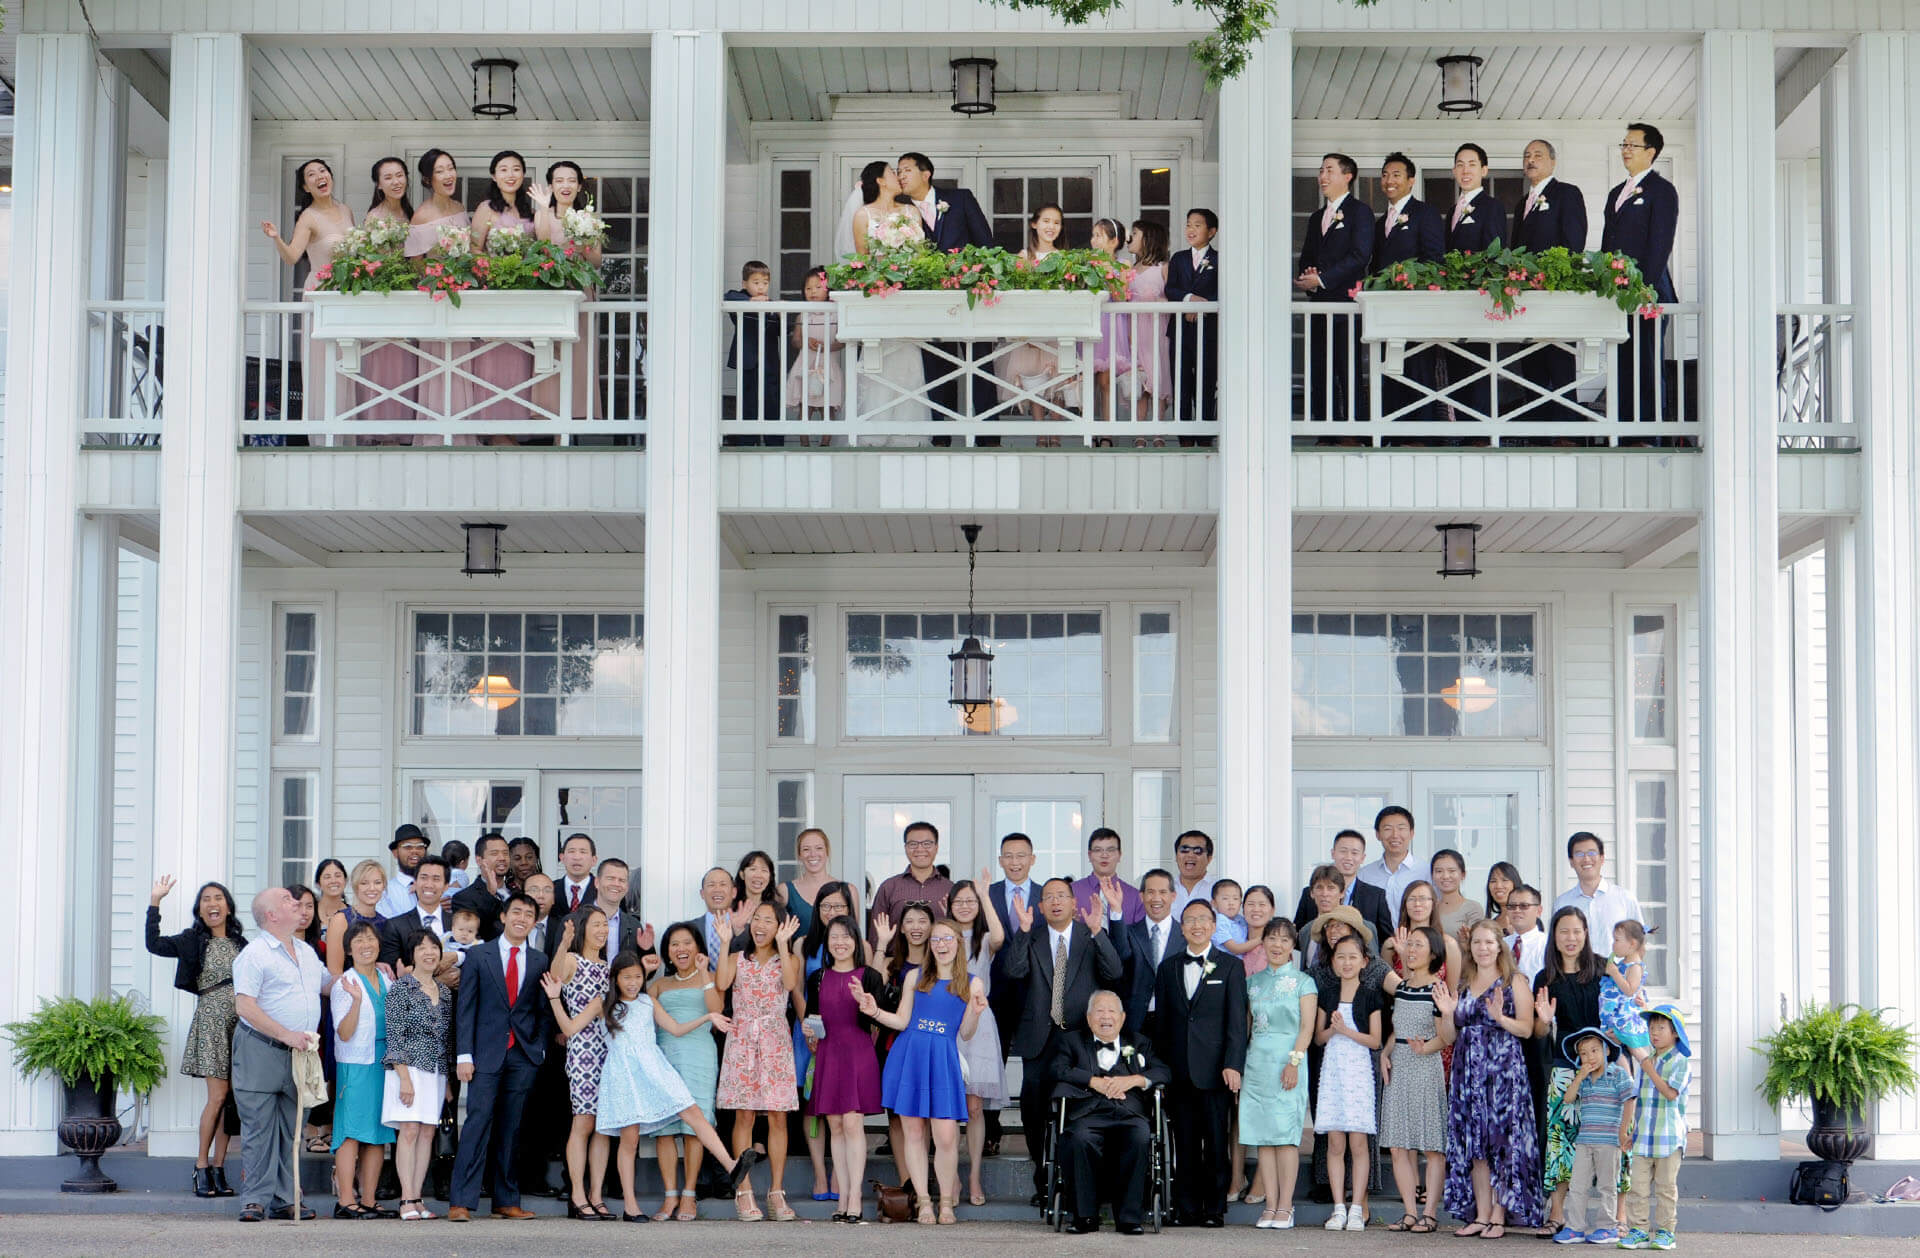 Epic Wedding portrait showing the entire wedding party and guests at Waldenwoods Resort in Howell, Michigan.